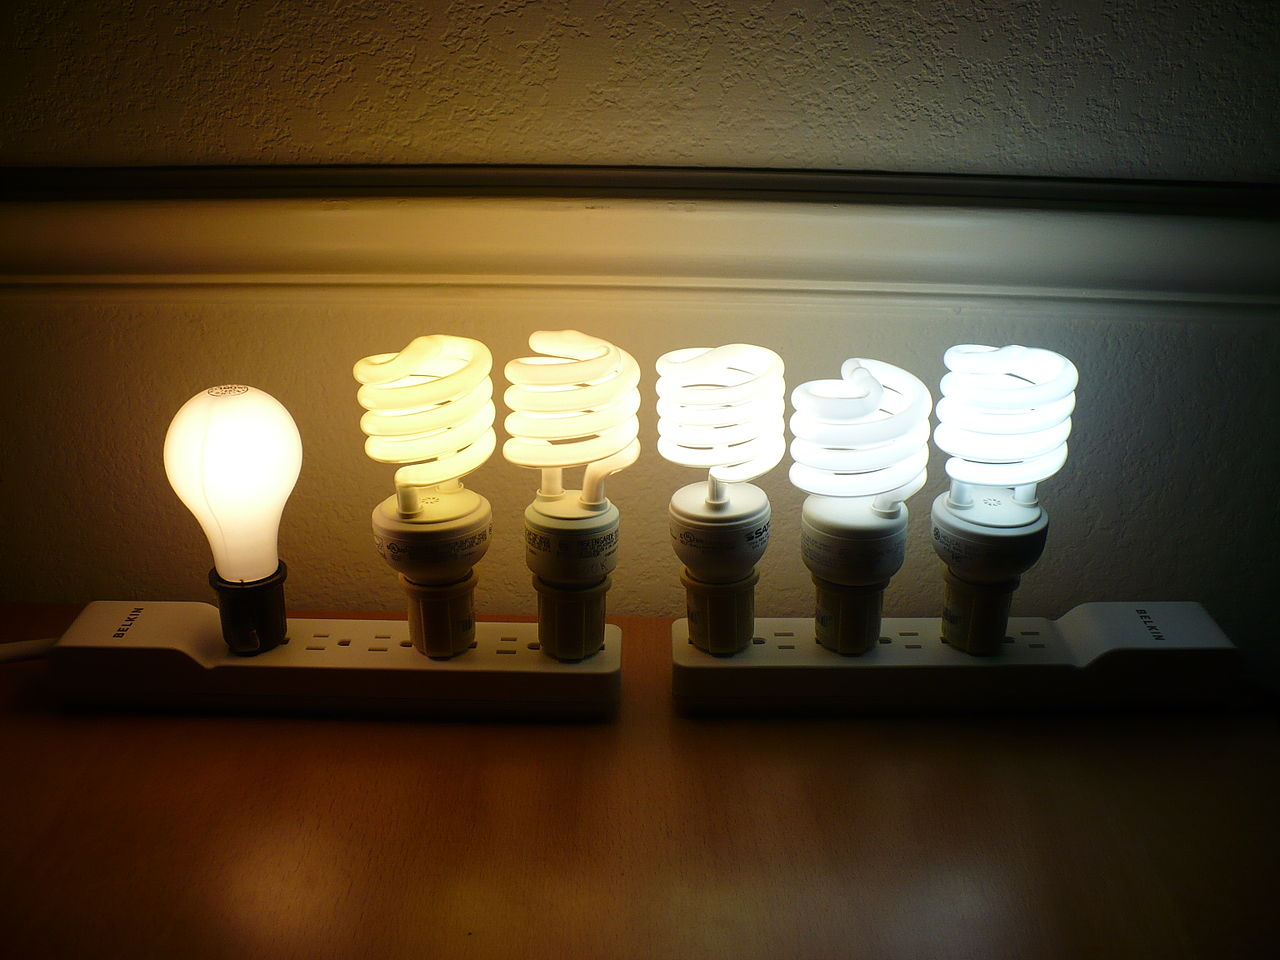 1280px-Color_temperature_comparison_of_5_CFLs